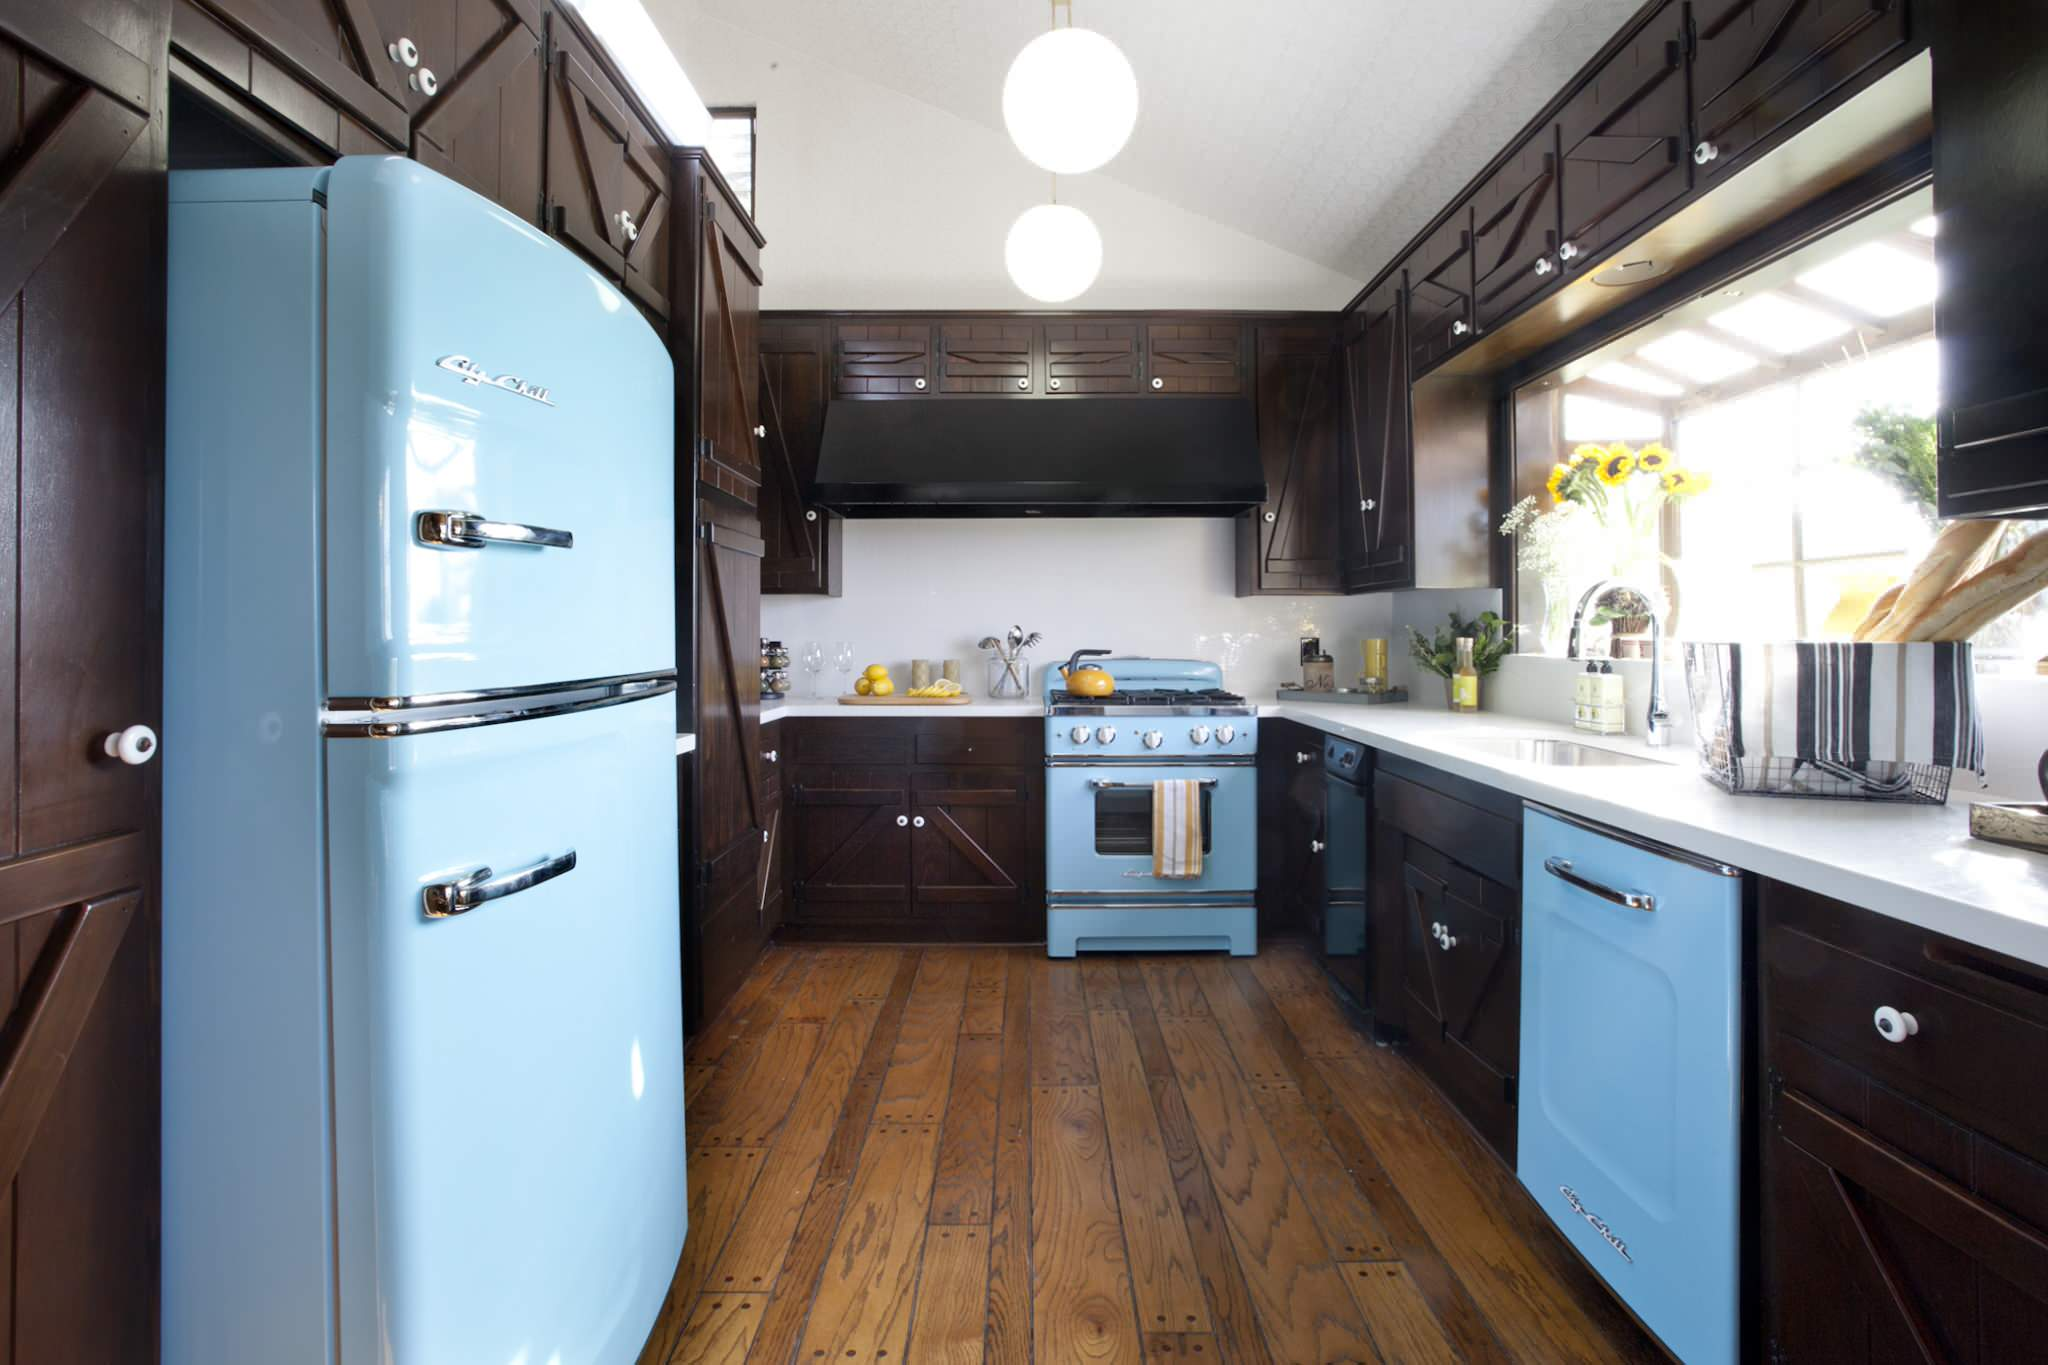 choosing-the-right-colors-for=kitchen-appliances